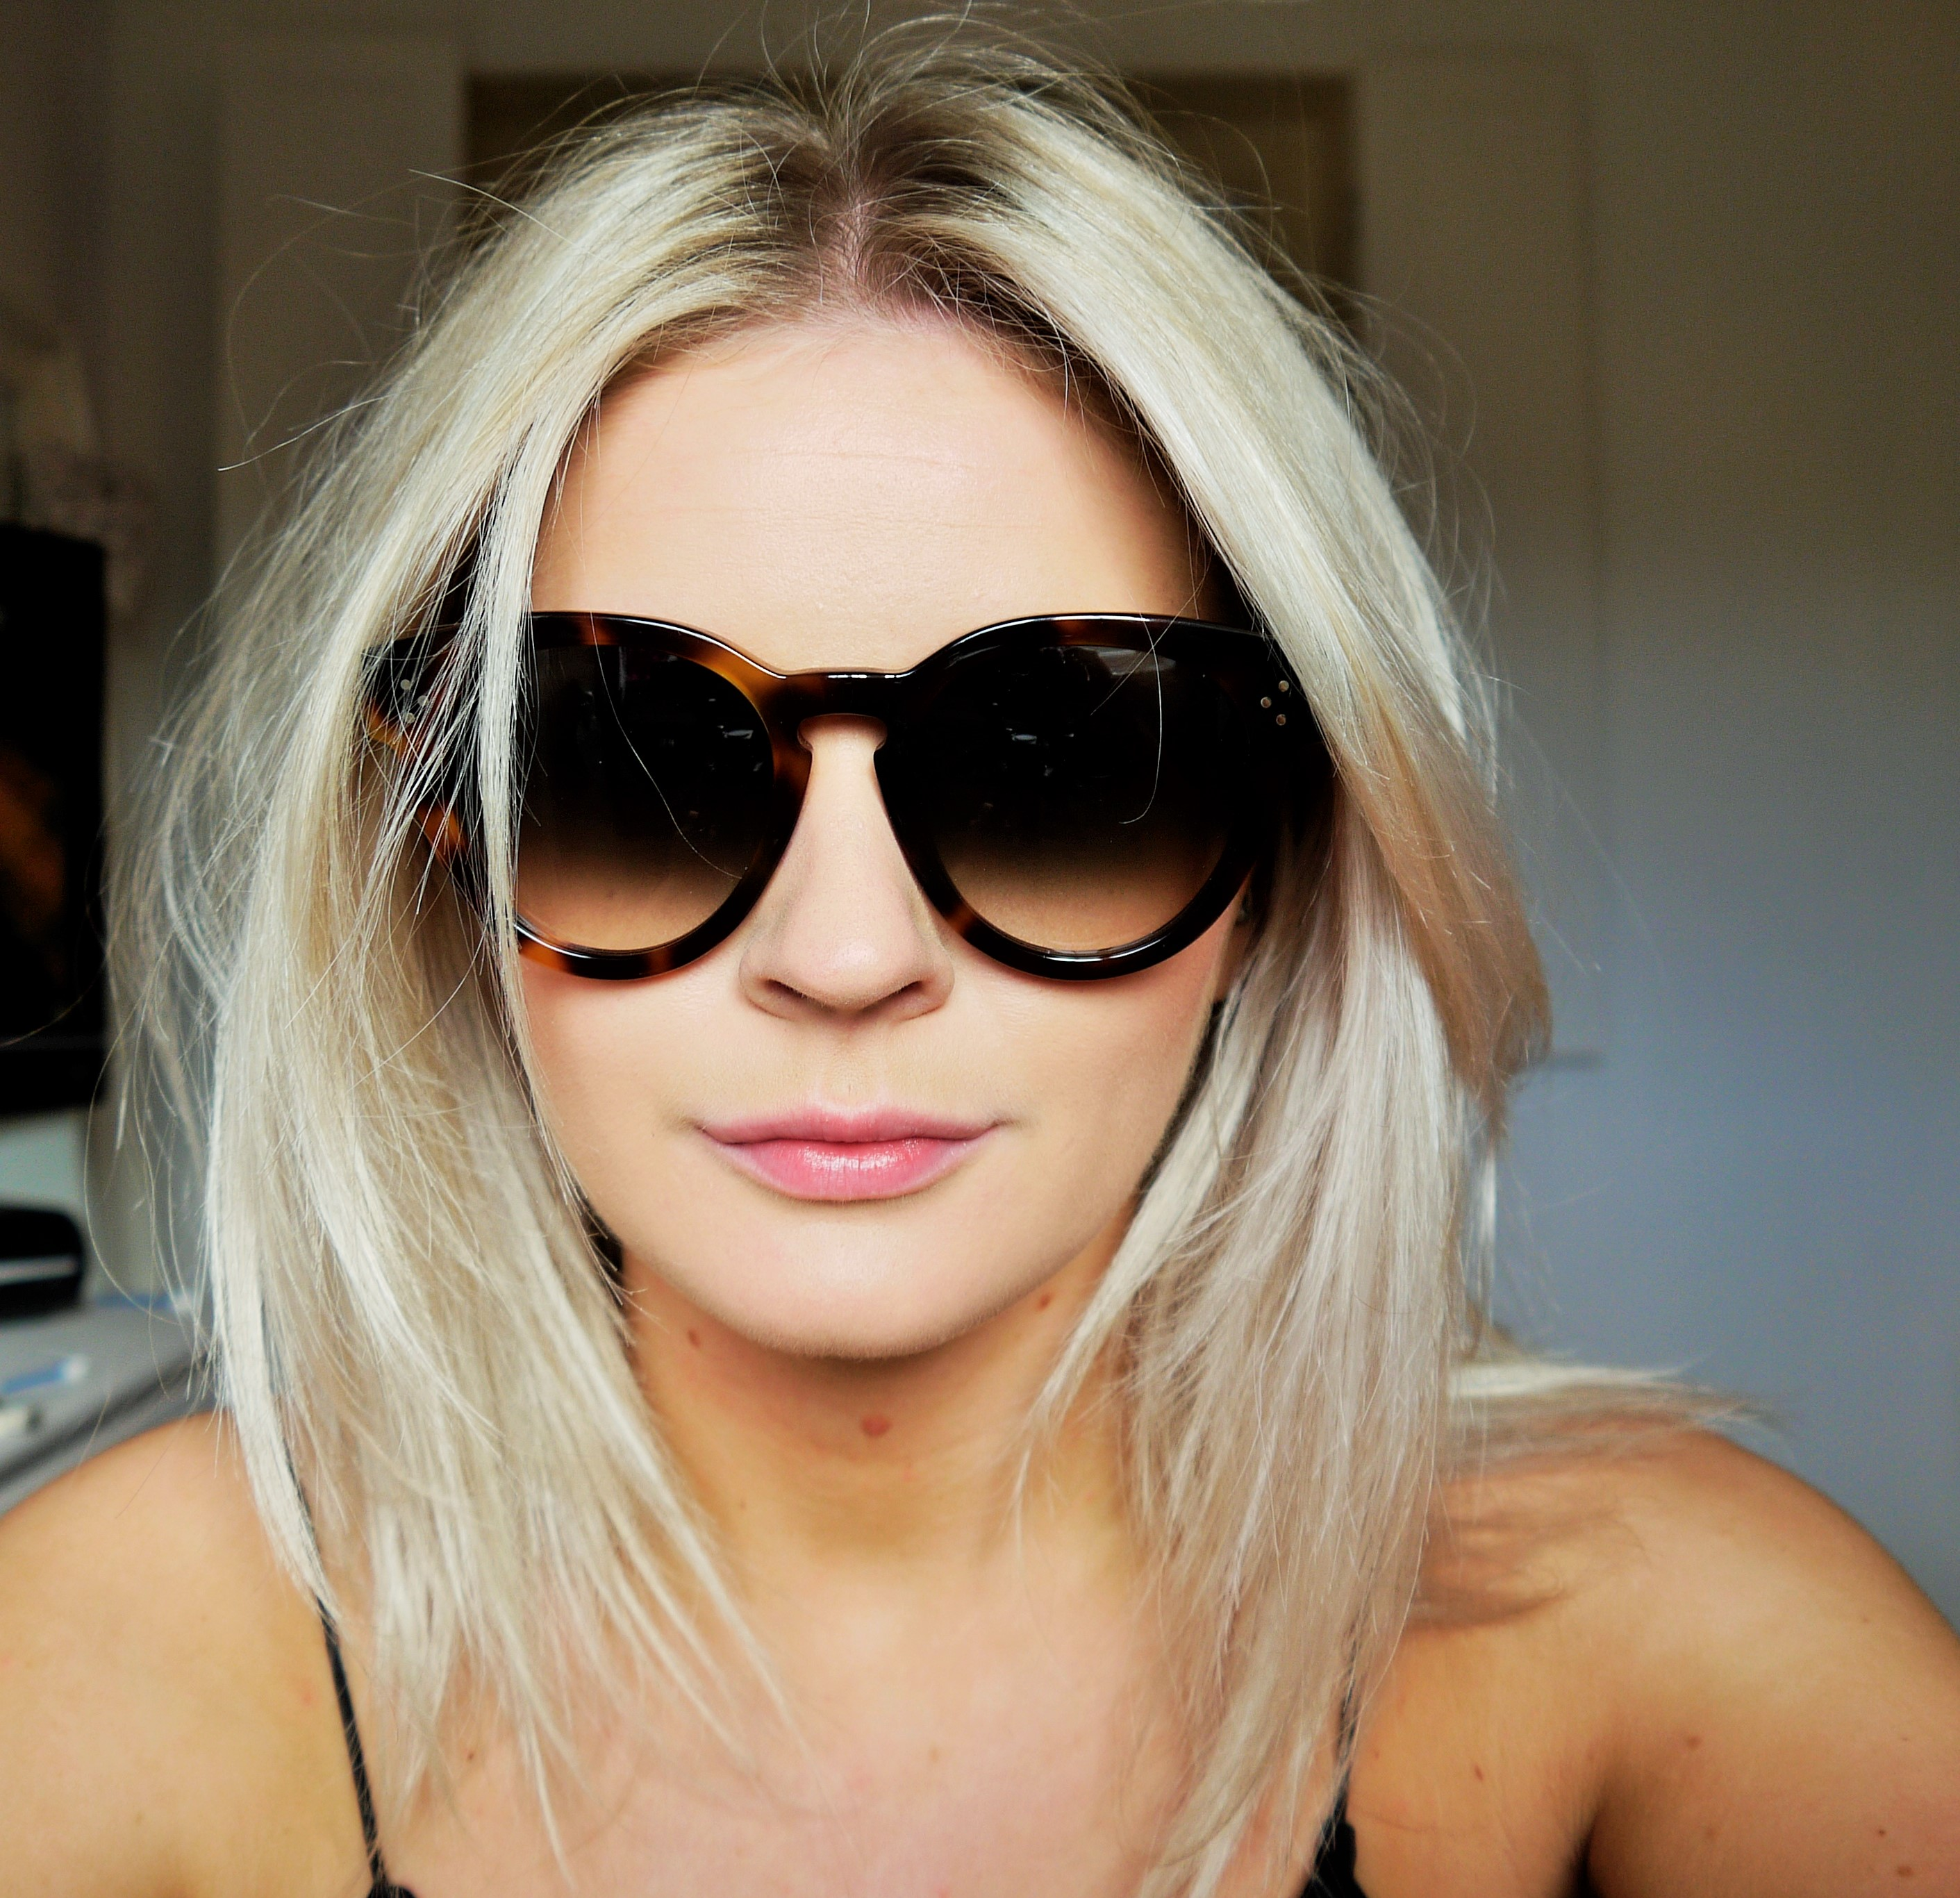 Celine Preppy Sunglasses  review smart glasses celine